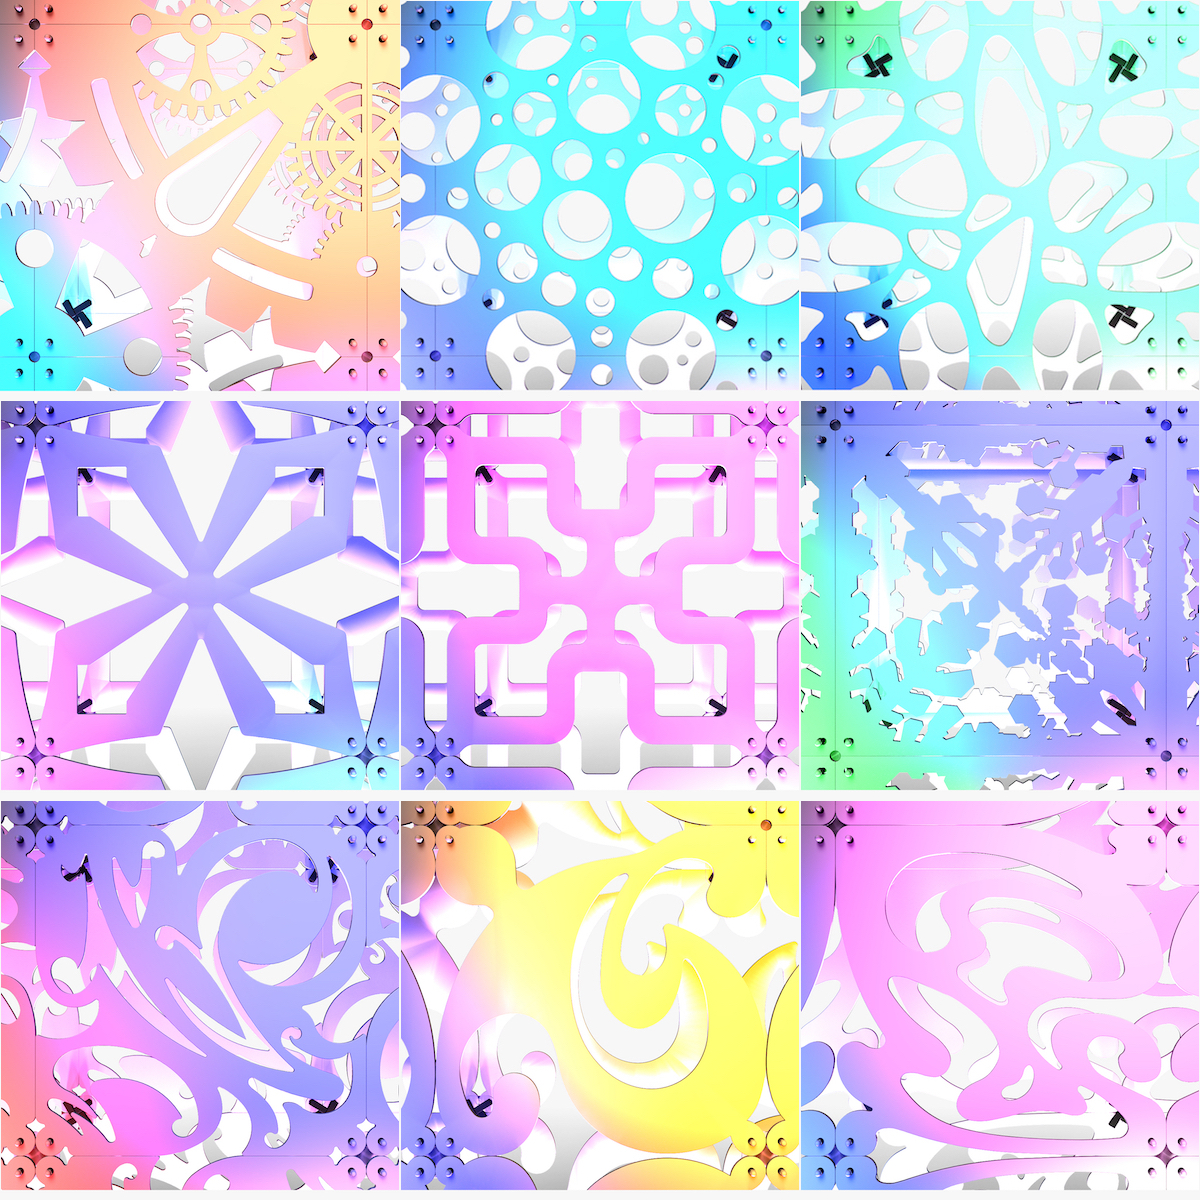 70-00-StageDecorCollection_01_a